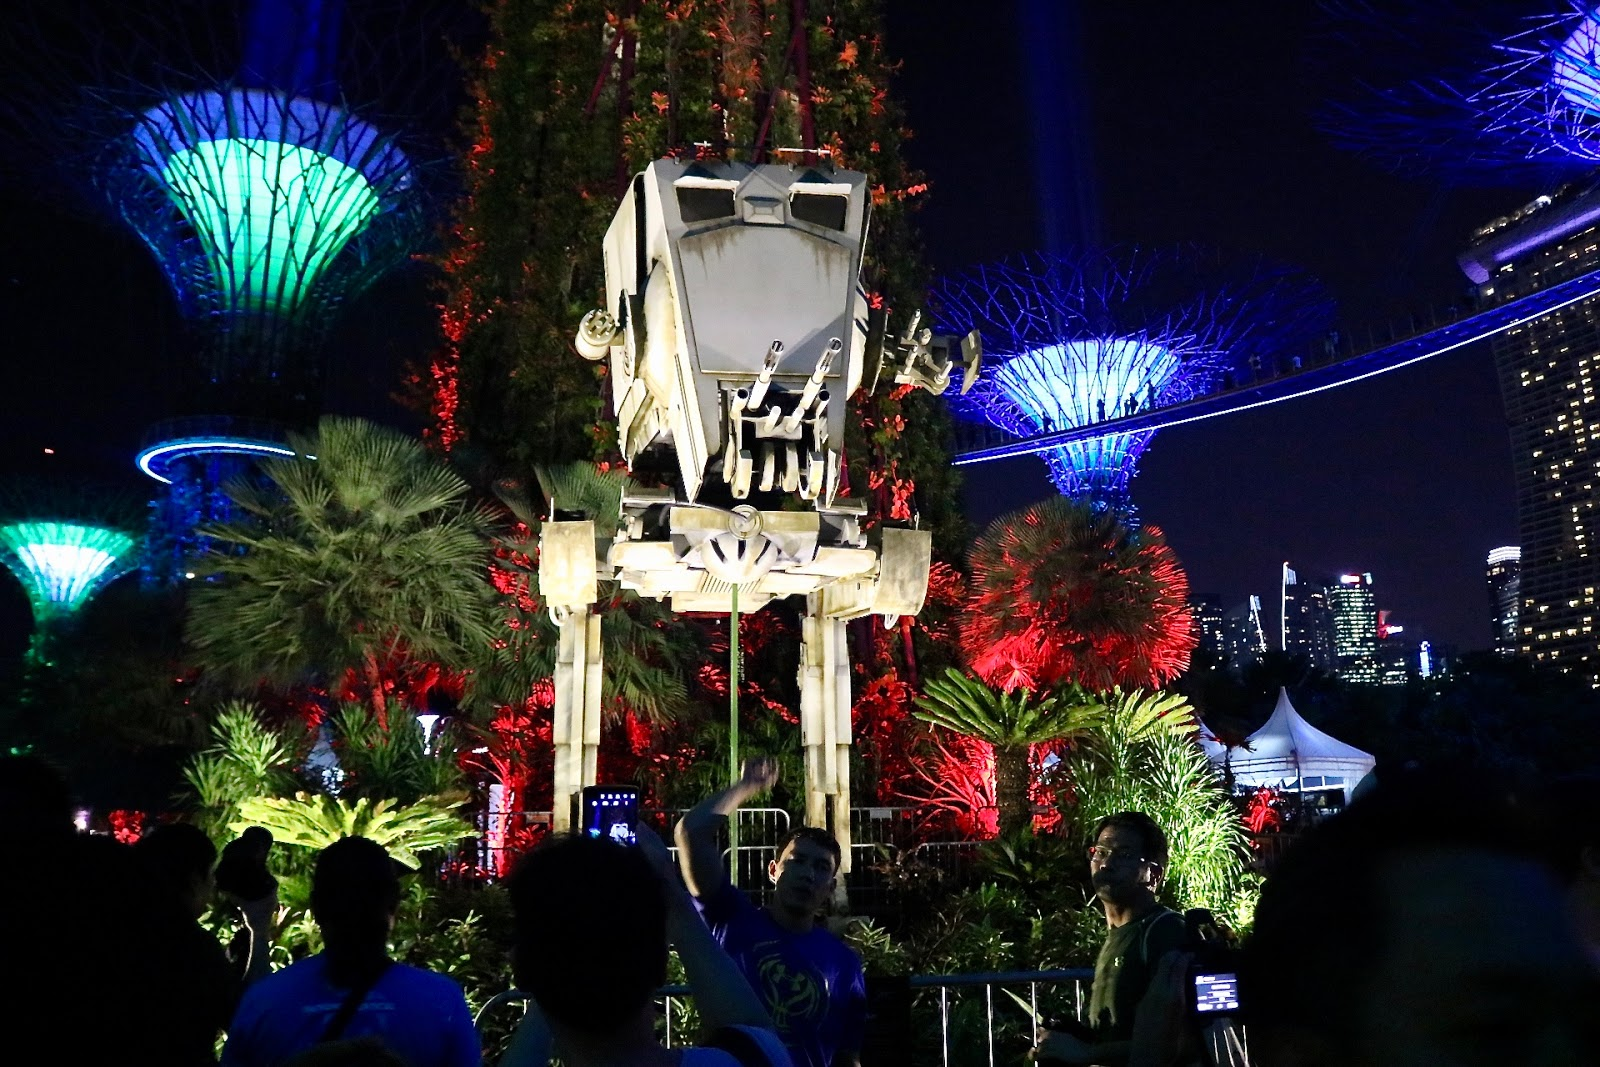 Star Wars Day (May 4th) at Gardens by The Bay, Singapore